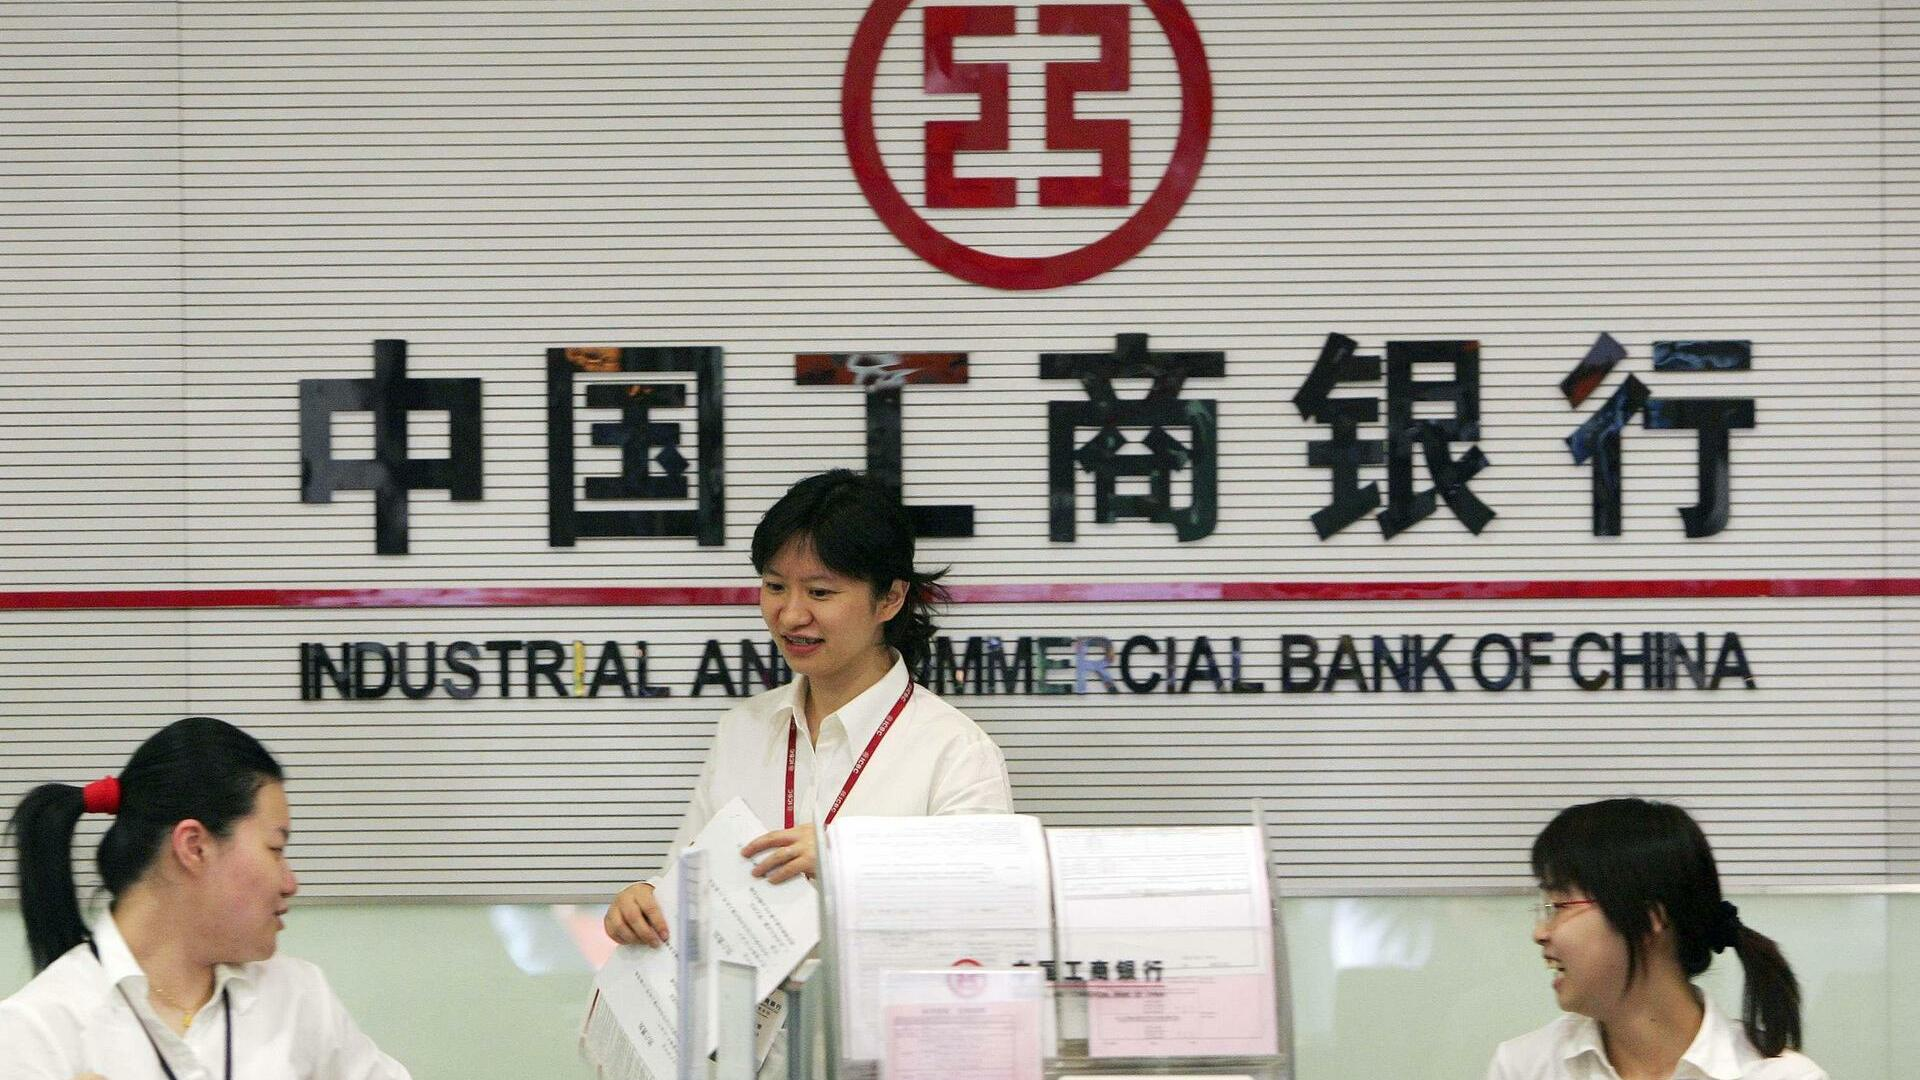 Klasse 2 – Industrial and Commercial Bank of China Quelle: REUTERS